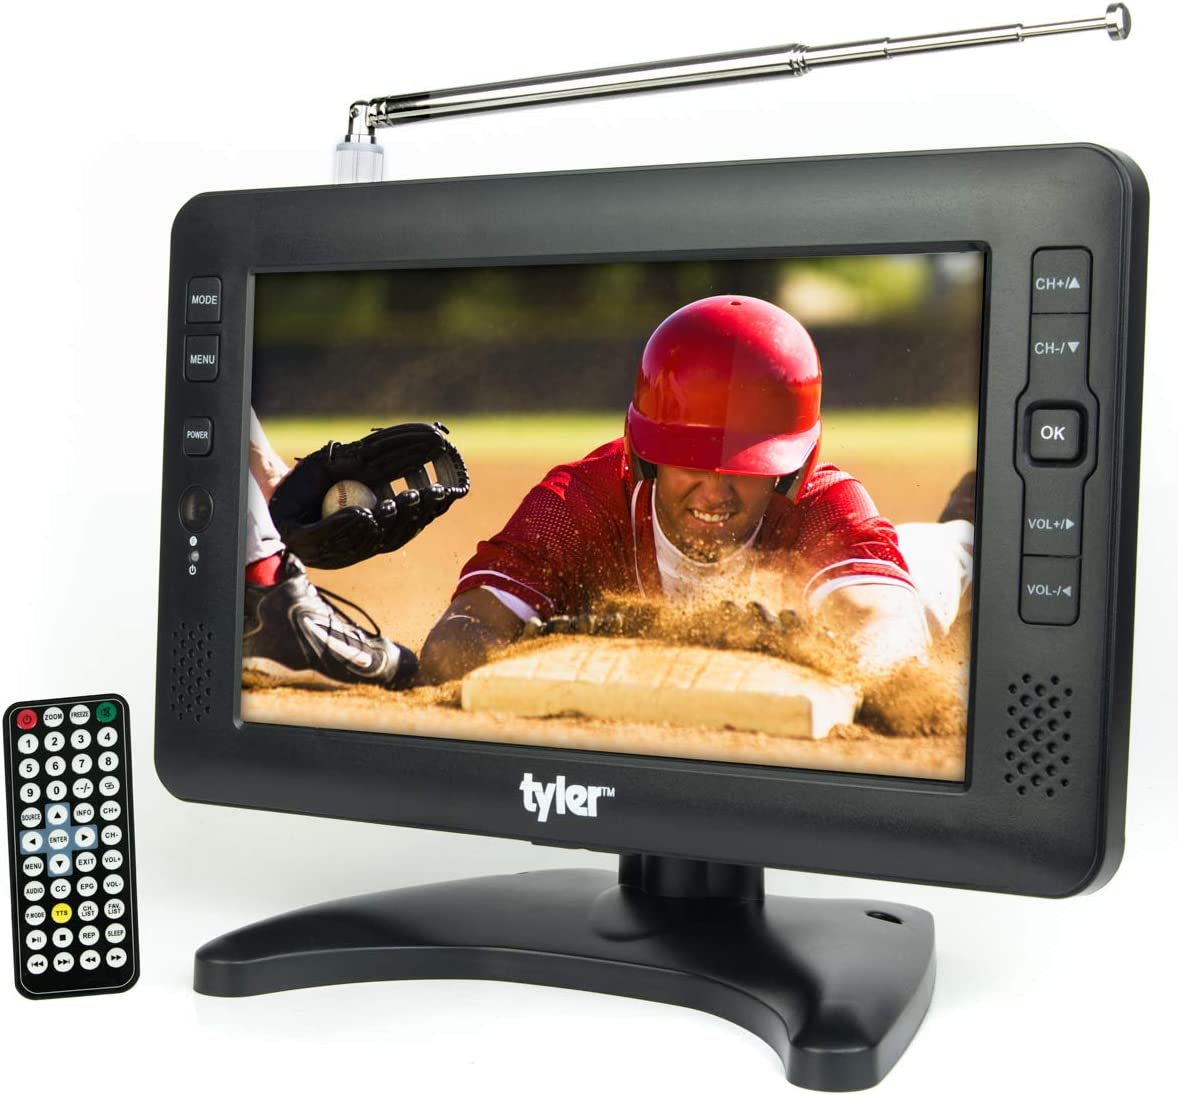 Tyler TTV704-9 Portable Rechargeable Battery Powered LCD TV - AC/DC 9-inch Television for Kitchen, Car, Camping, RV, Outdoor - USB/SD Card Slot, Built-in Digital Tuner, AV Input, Antenna Included